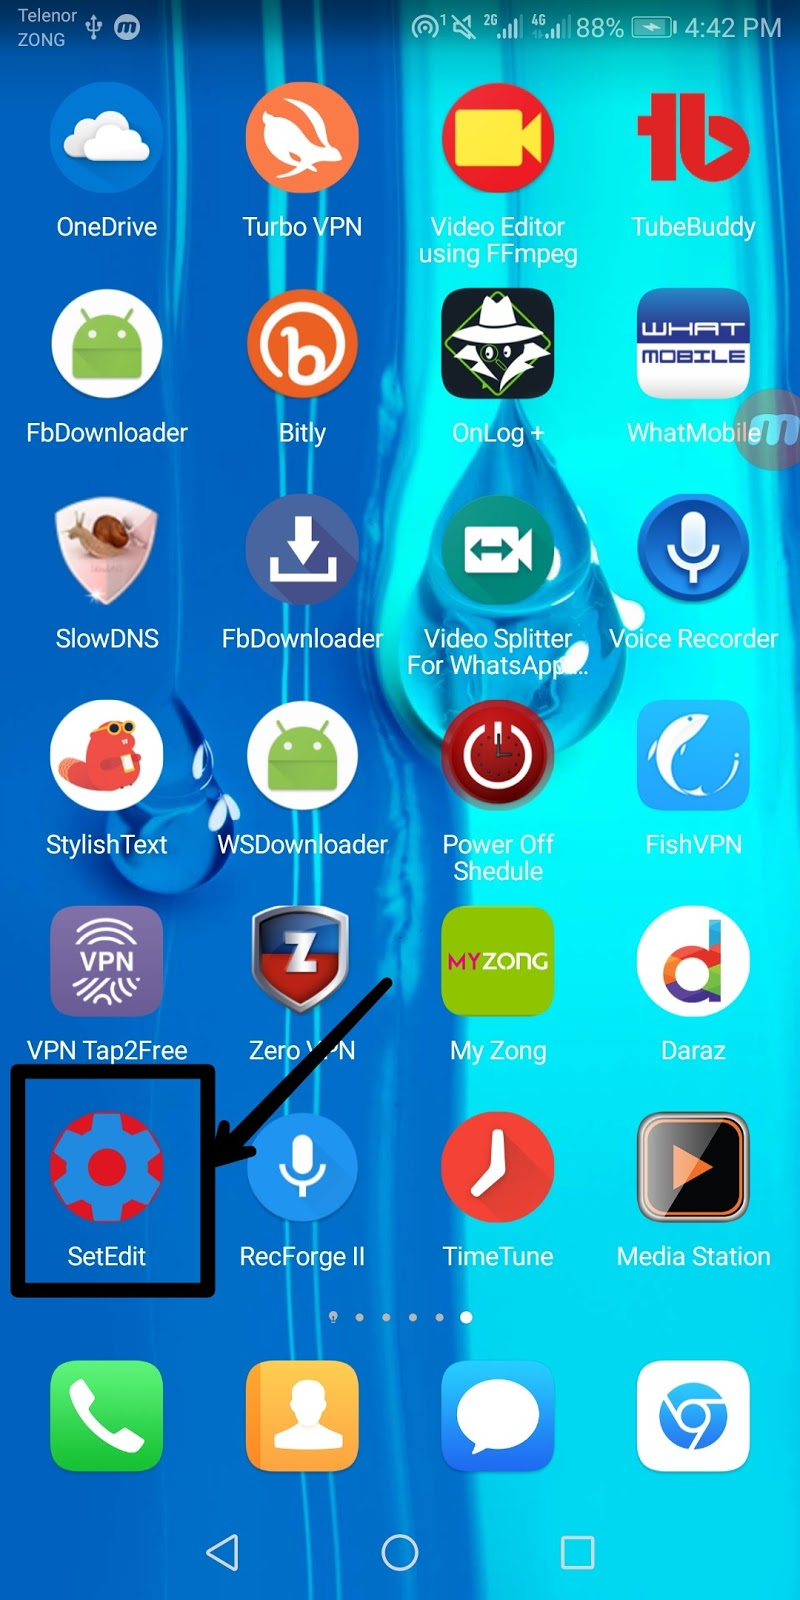 How to Enable 4G/LTE only Mode In Mobile Phone? - FreeTricks